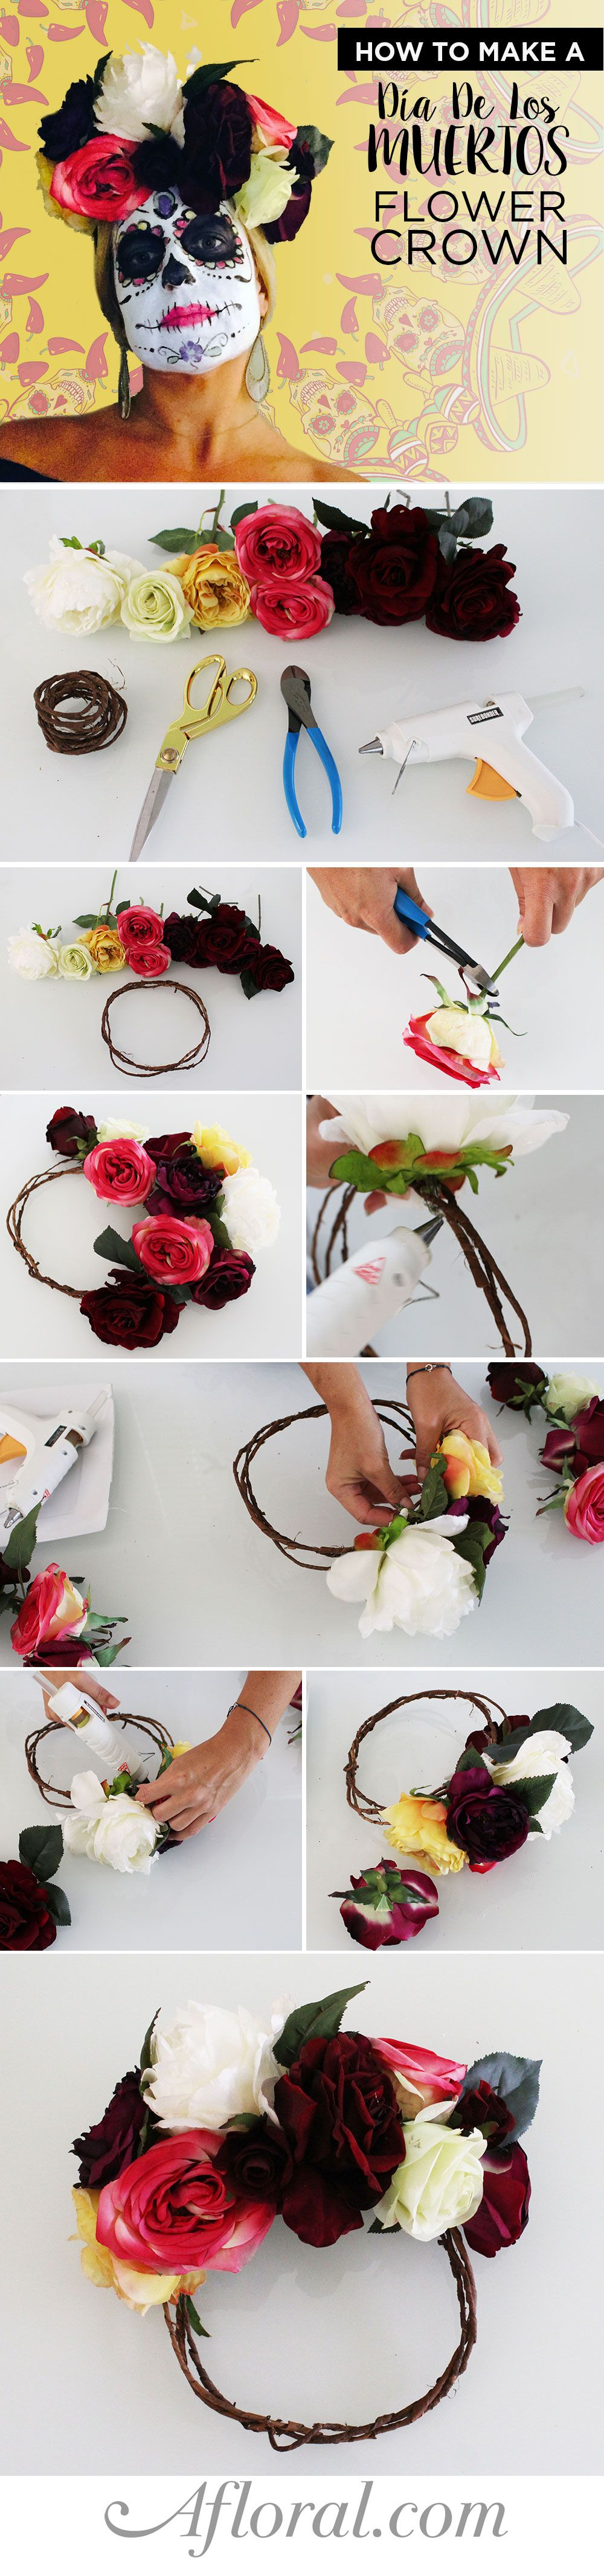 How to make a flower crown floral crown dia de and silk flowers how to make a flower crown izmirmasajfo Images